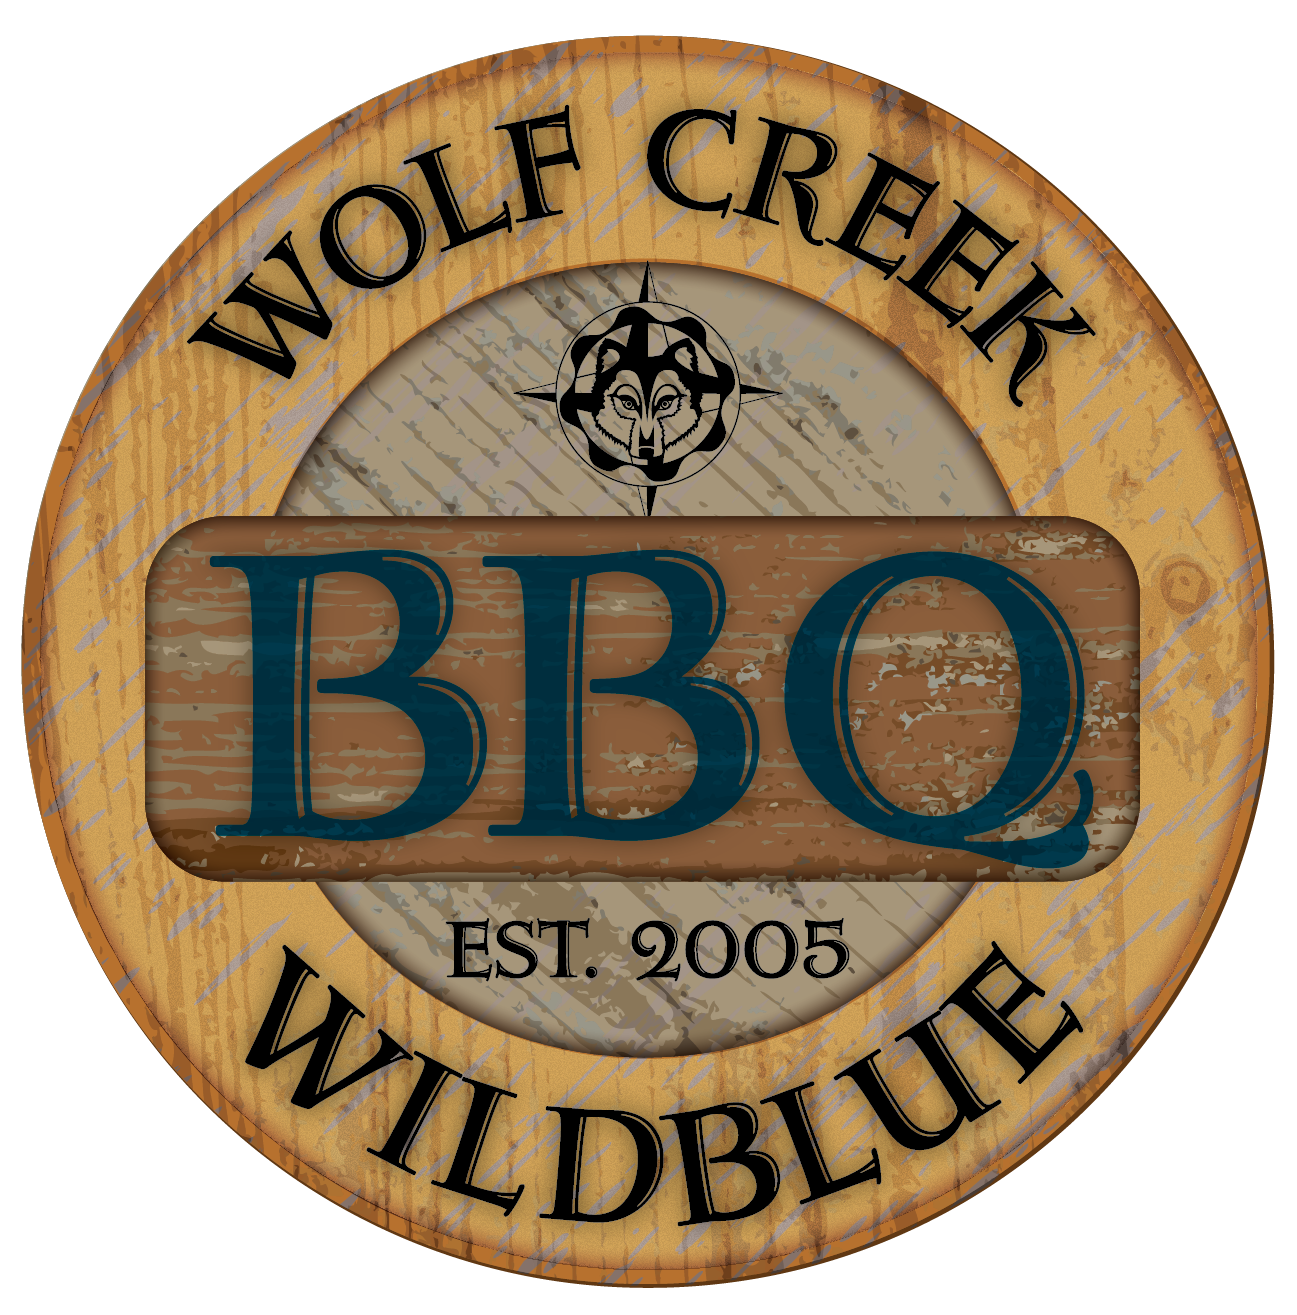 Wolf Creek WildBlue BBQ